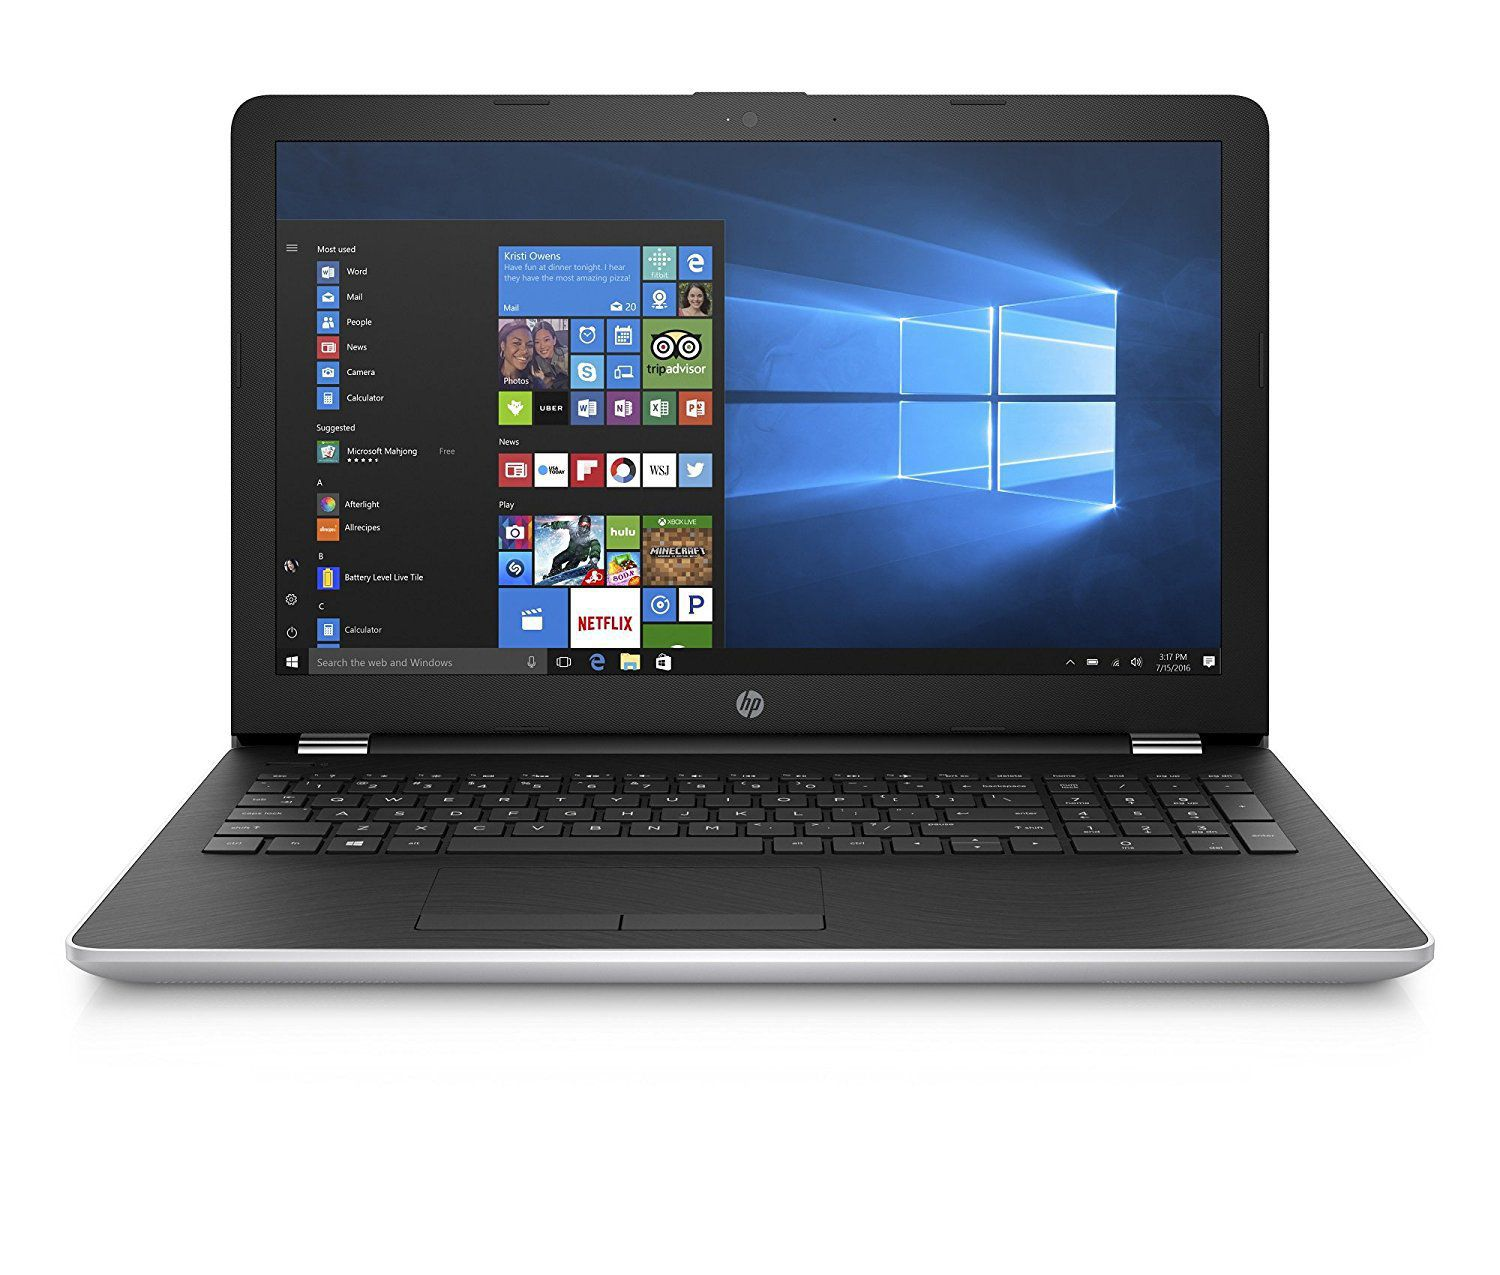 HP 15-BS638TU Portable FHD15.6 Inch Laptop (7th Gen Intel Core i3 Processor i3-7130U/4GB/1TB/Windows 10 Home 64-bit/Microsoft Office Home & Student 2016/Intel HD Graphics 620) with Anti Glare